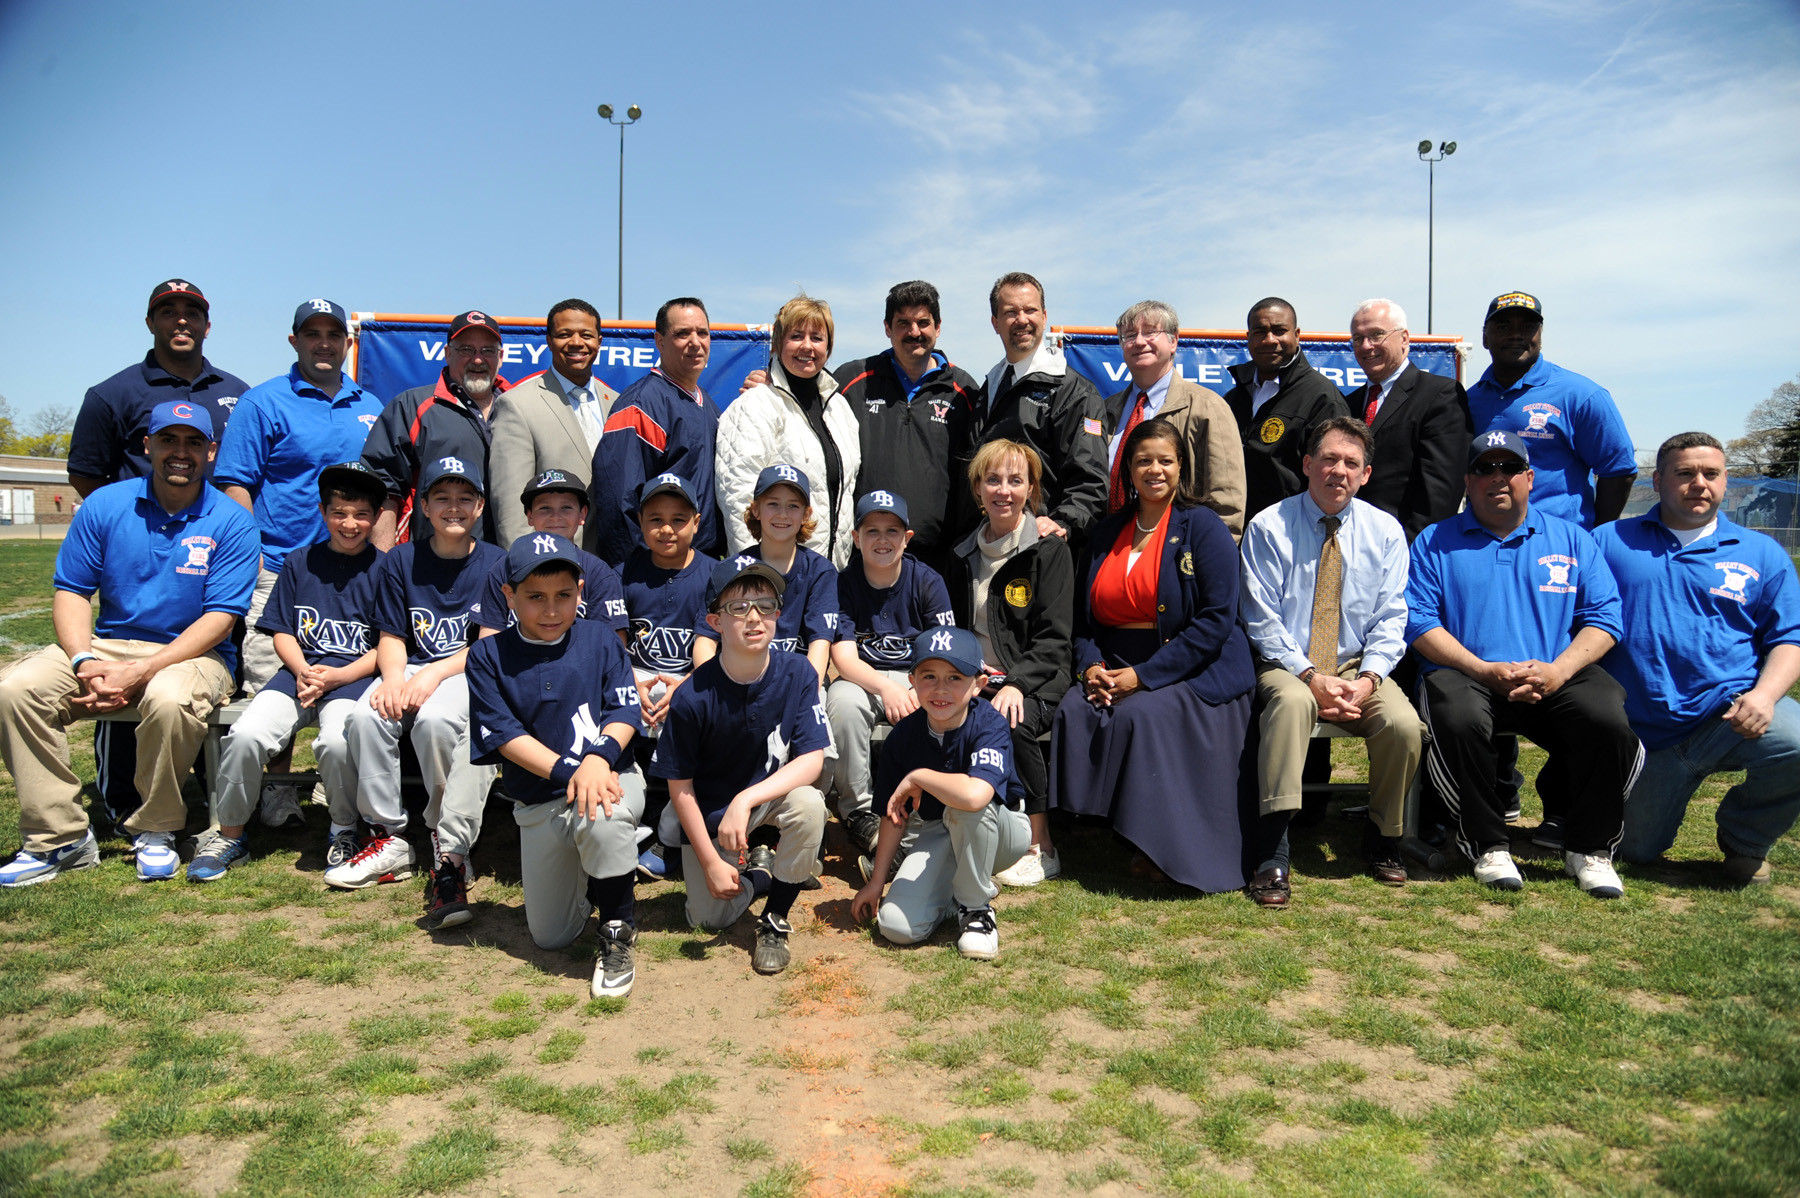 Members of the Rays and Yankees, Valley Stream Baseball League coaches and officials and politicians celebrated the league's 71st Opening Day on Saturday afternoon at Firemen's Field. Standing third from left were Valley Stream Deputy Village Clerk Rich DeAngelis, Leg. Carrie Solages, Trustee John Turfarelli, Town of Hempstead Supervisor Kate Murray, Valley Stream Baseball League President Bob Inzerillo, Mayor Ed Fare, Justice Robert Bogle, Deputy Mayor Dermond Thomas and Town of Hempstead Councilman James Darcy. Sitting from center, Trustee Virginia Clavin-Higgins, Assemblywoman Michaelle Solages and Leg. Fran Becker.